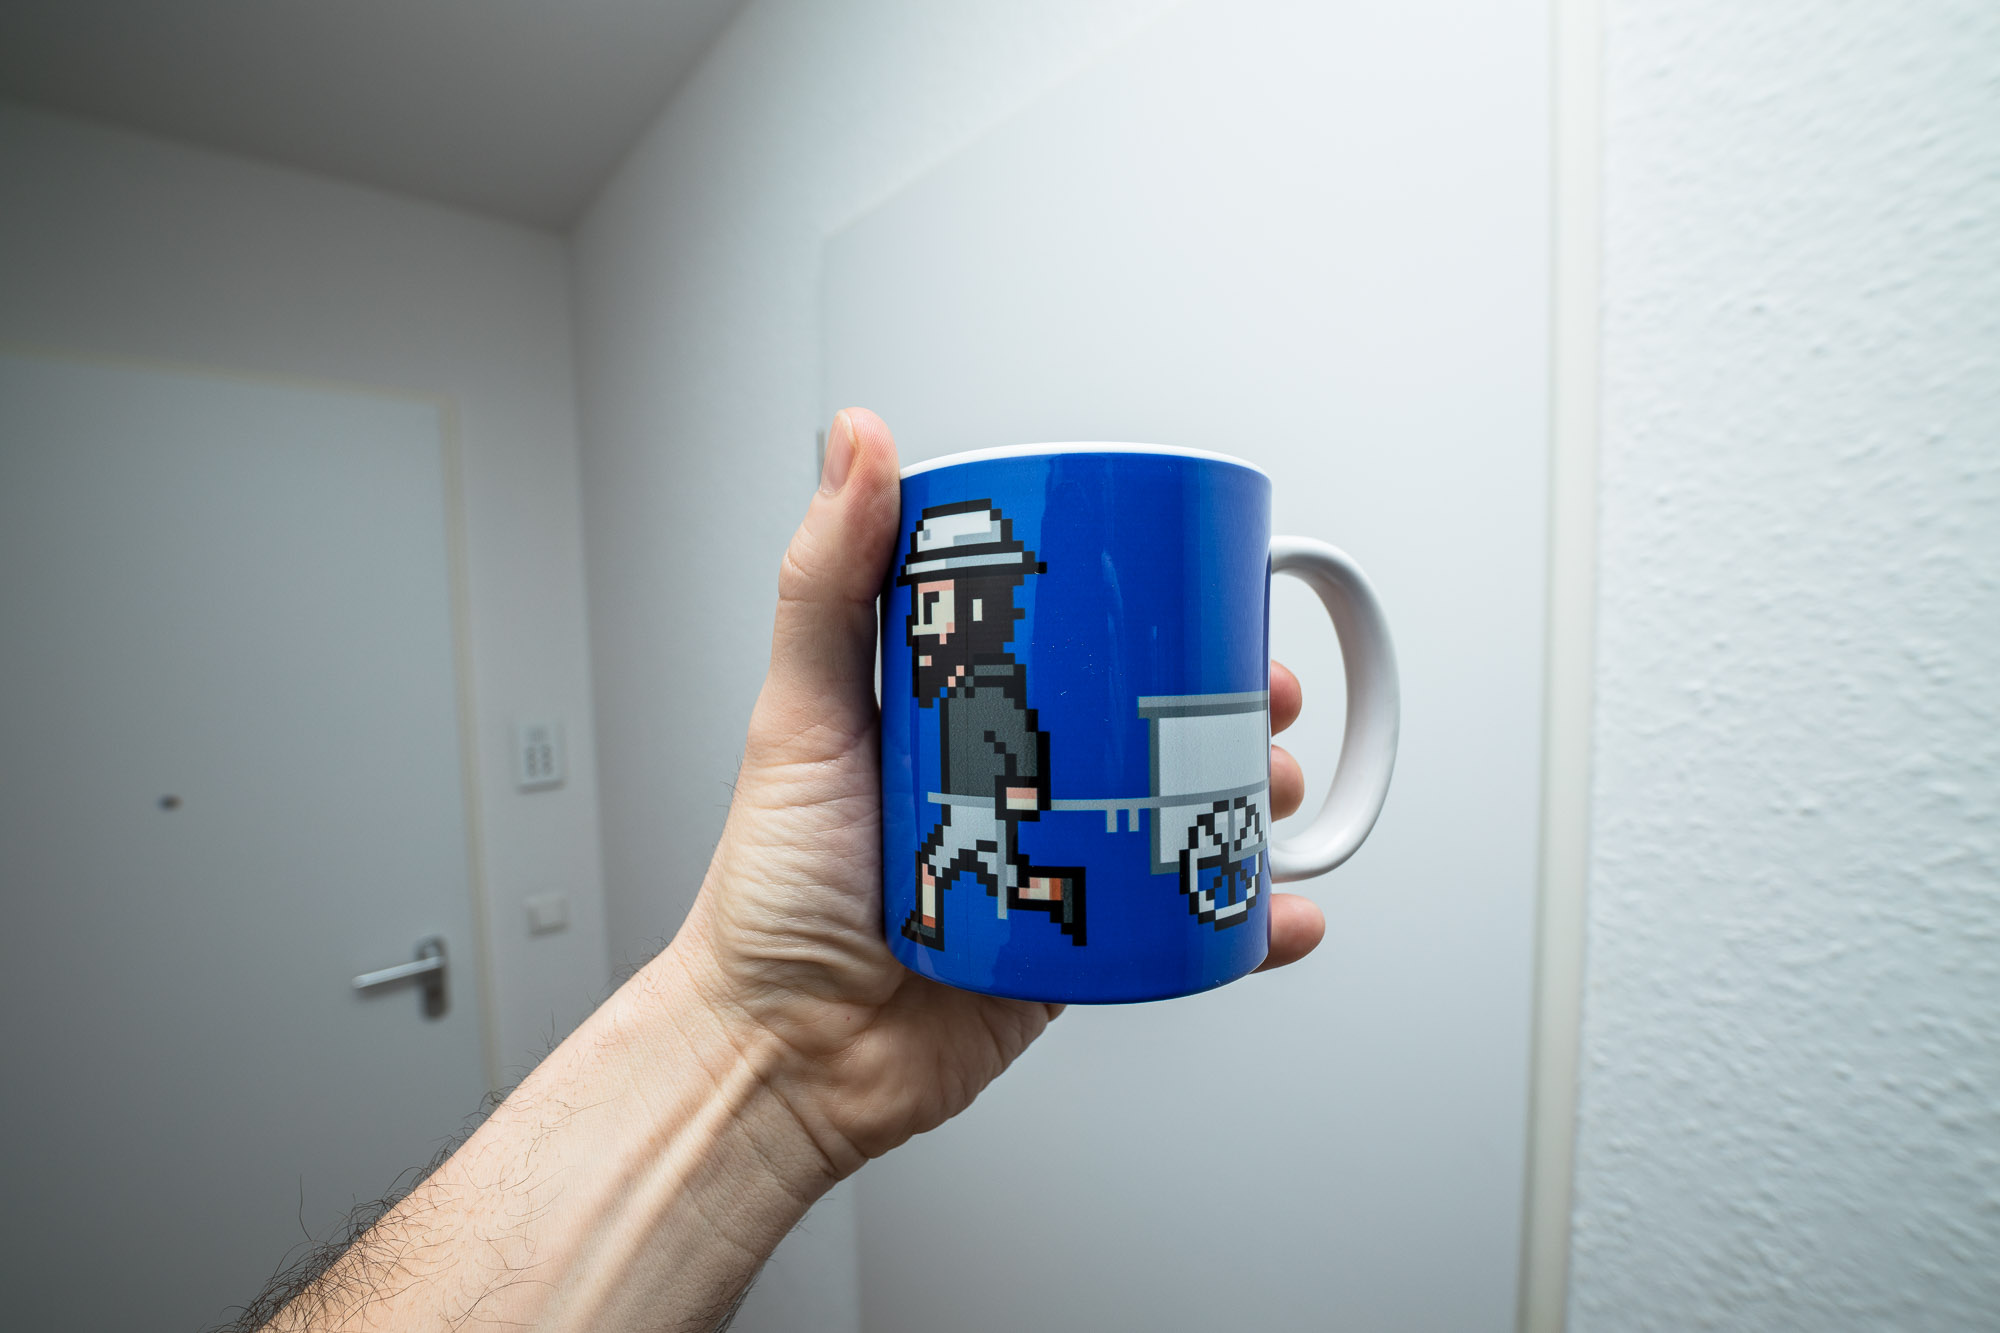 The Longest Pixel Mug